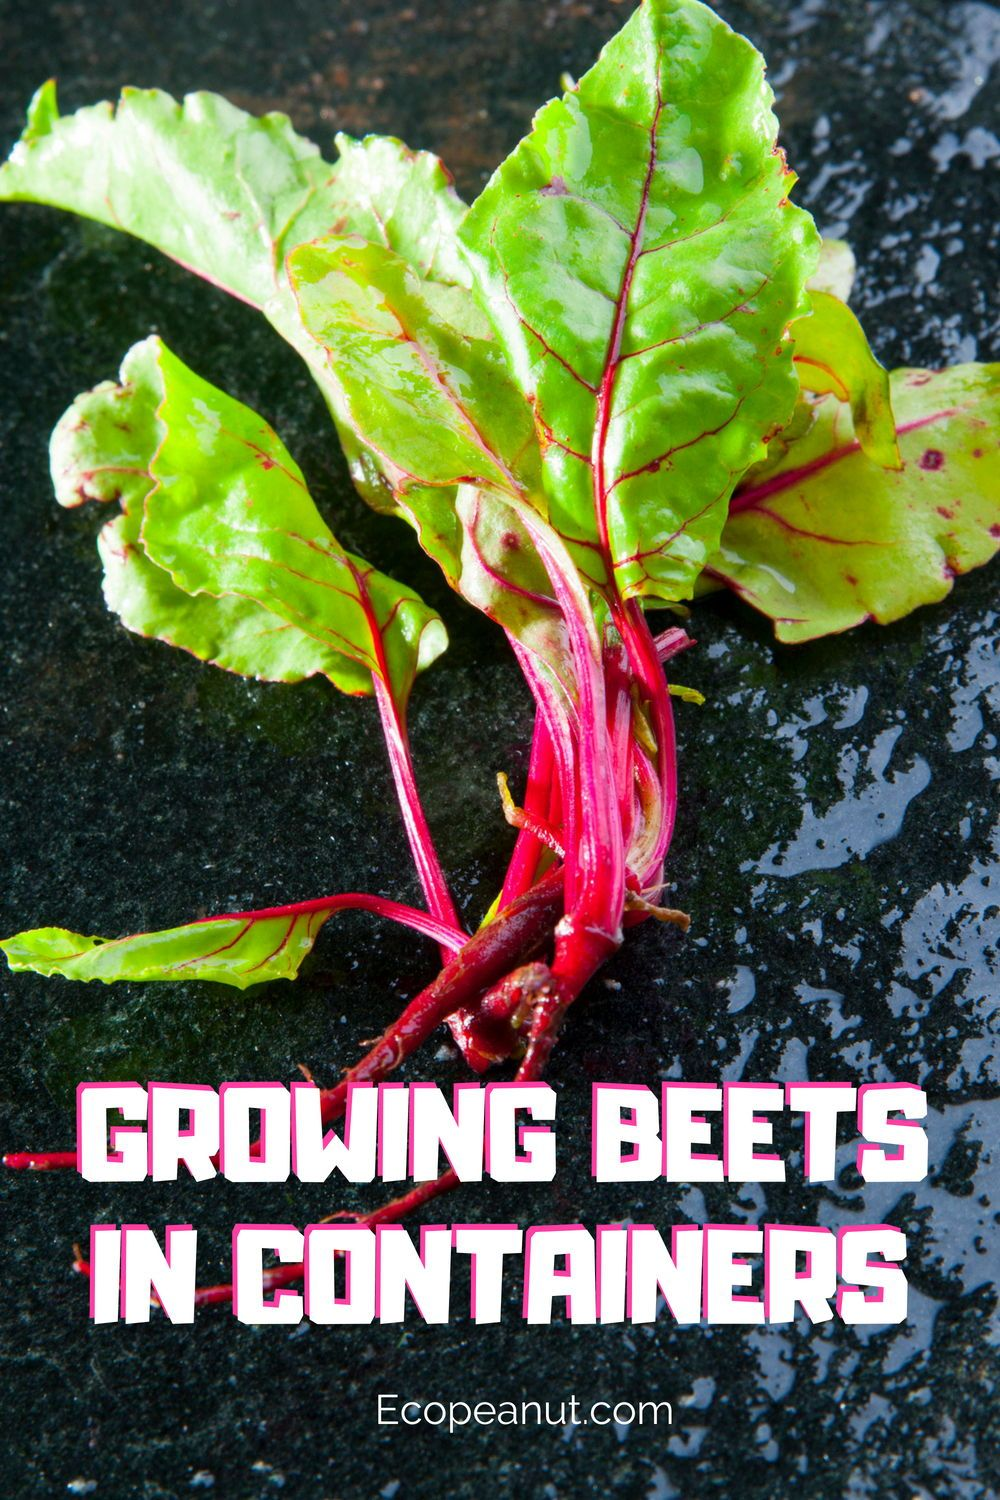 Growing beets in containers the simple and easy way